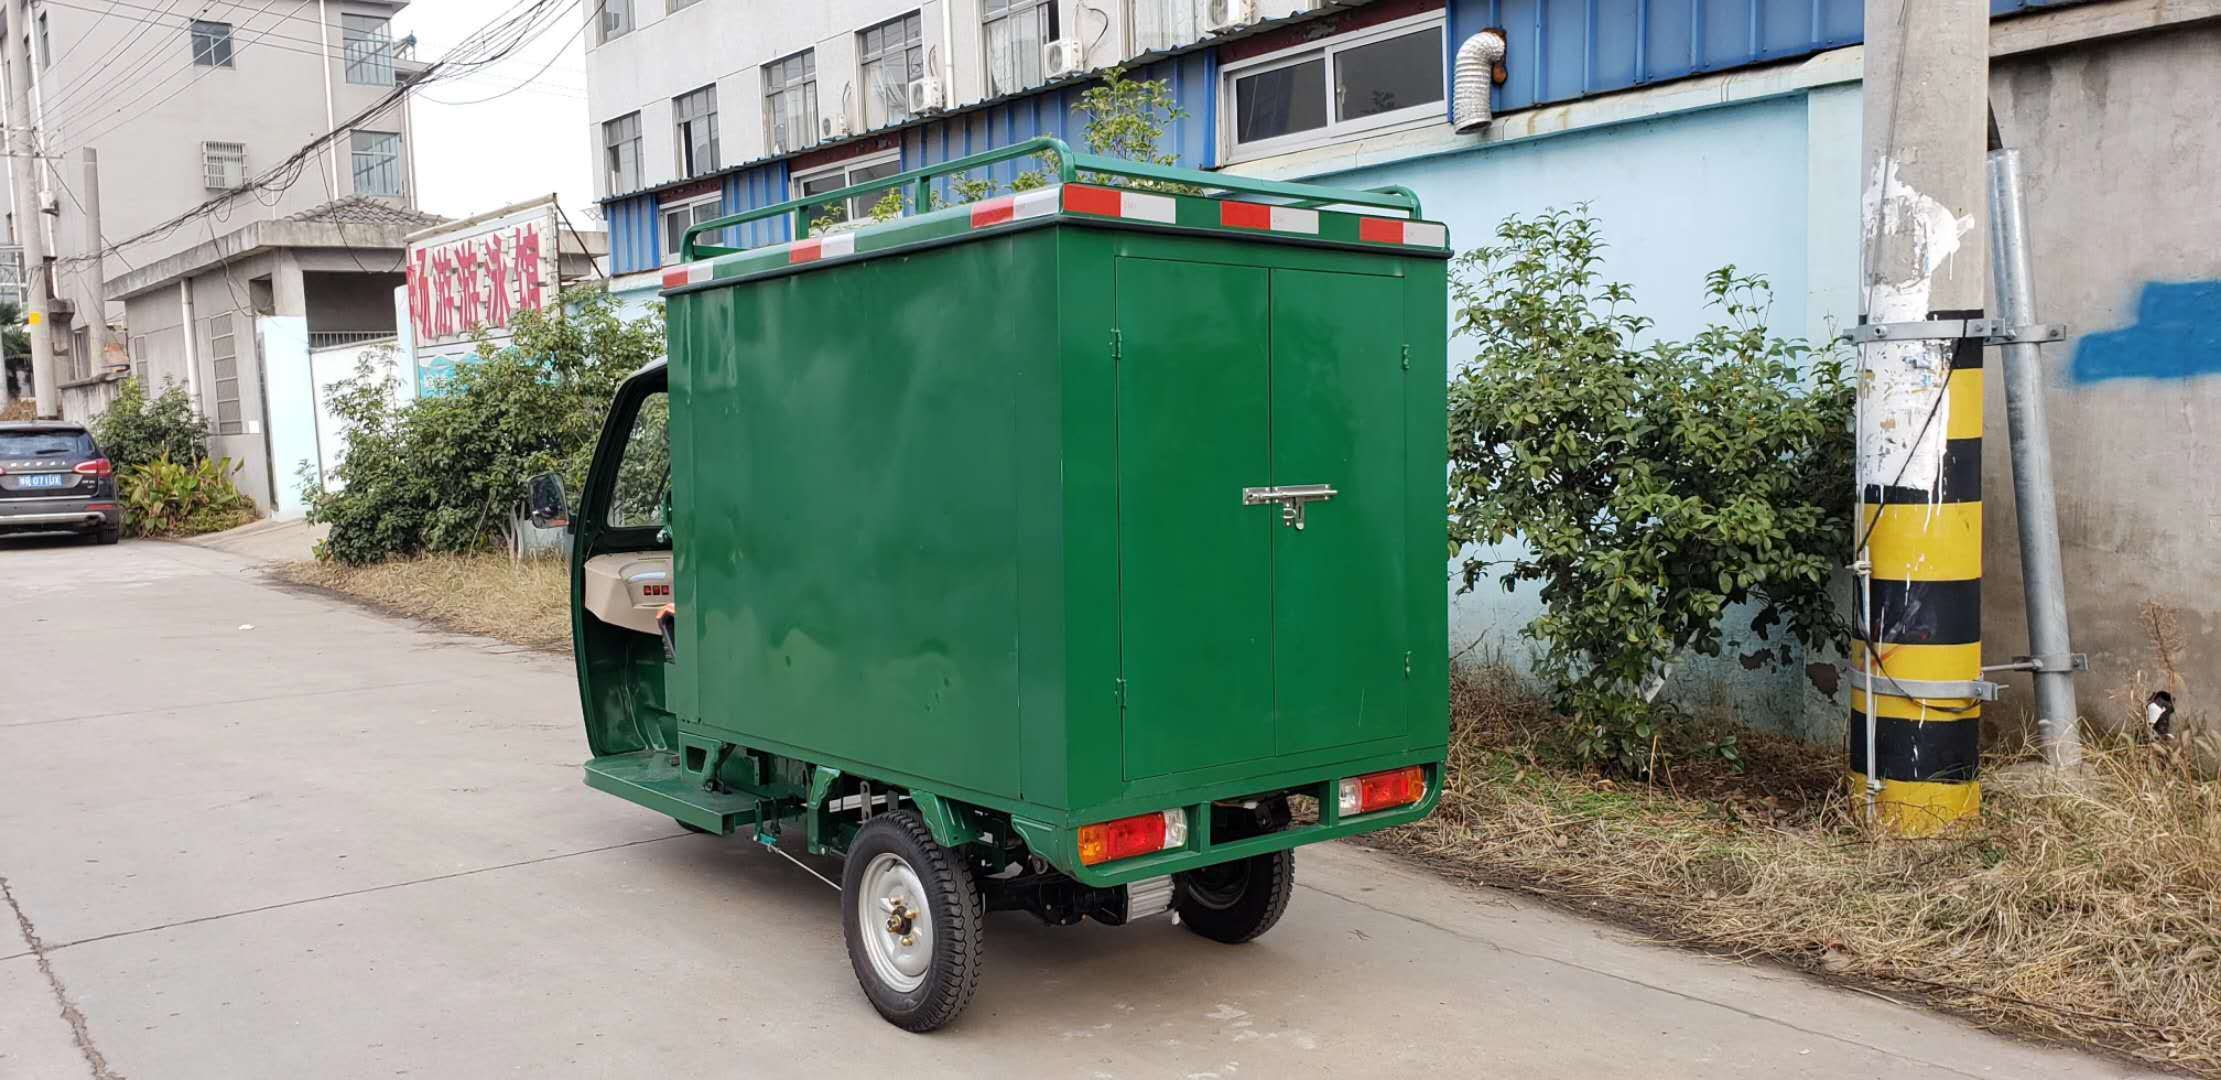 Express Delivery Vehicle